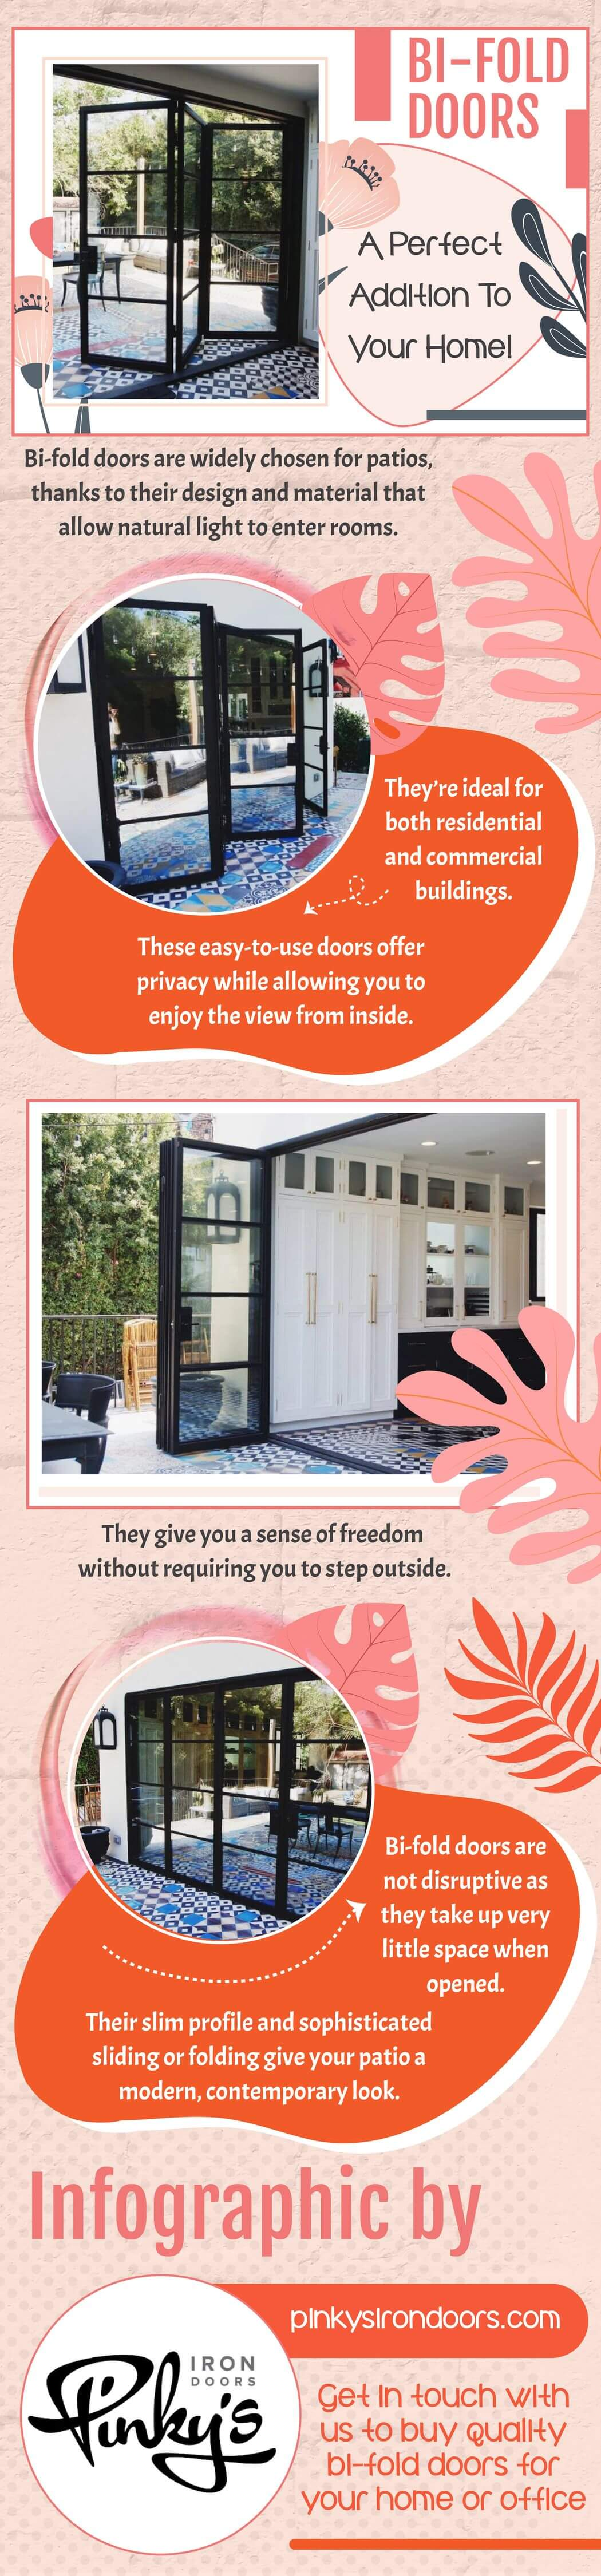 Bi-Fold Doors A Perfect Addition To Your Home!